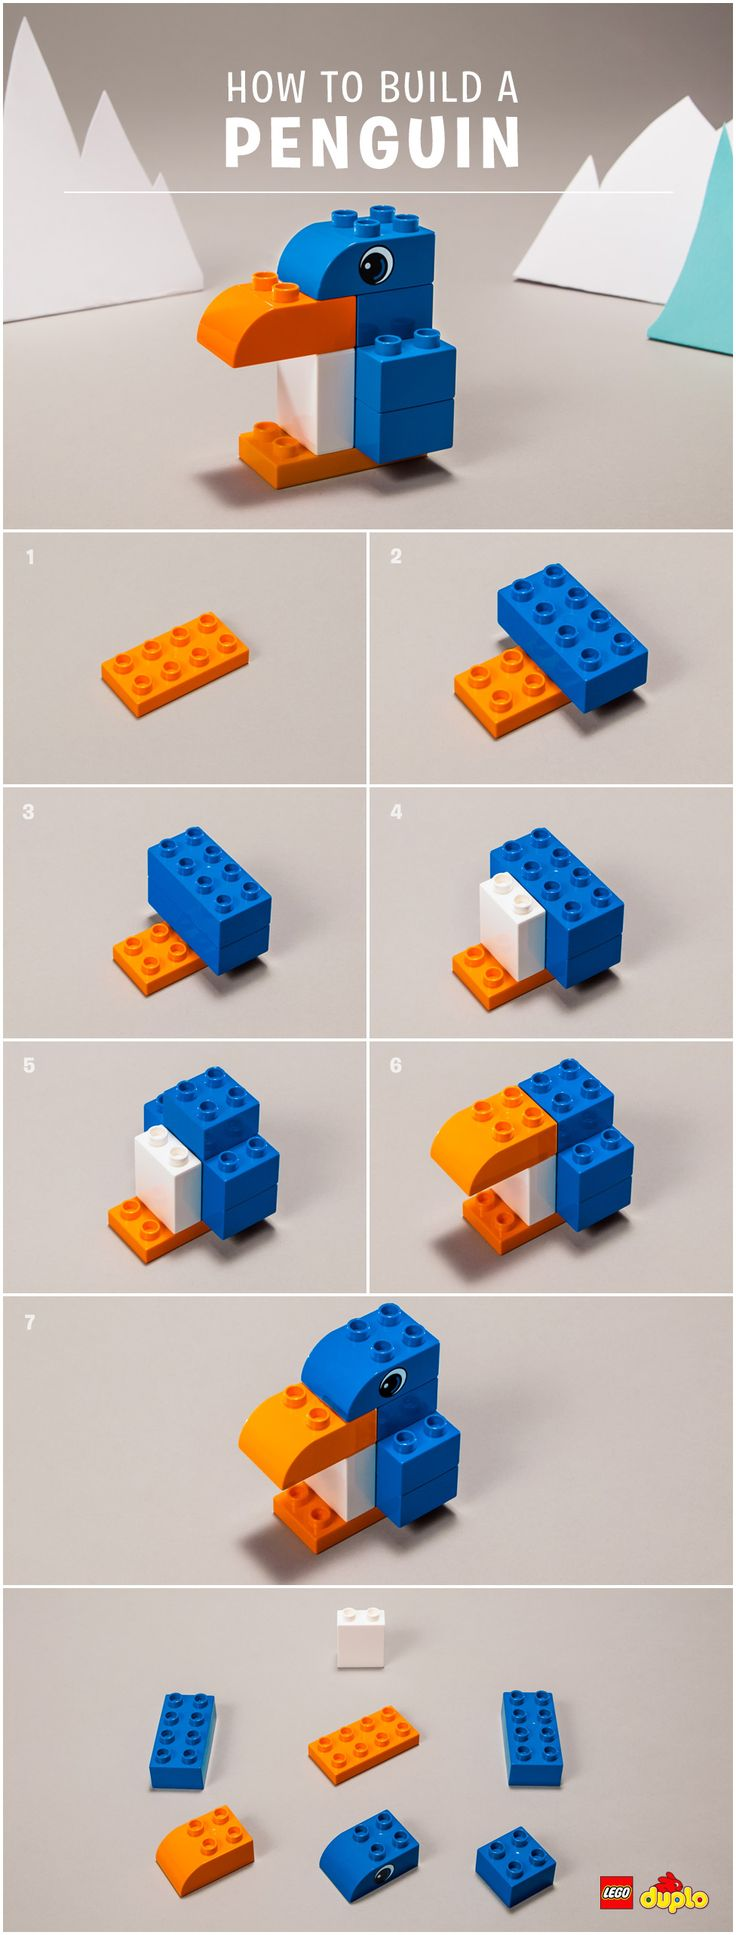 Penguins are amazing! And can help brighten up a grey November day - why not help your toddler create their very own waddling friend? Check out our building instructions here: https://www.lego.com/en-us/family/articles/diy-penguin-729671936bea421a8ba470e51af11210?ignorereferer=true